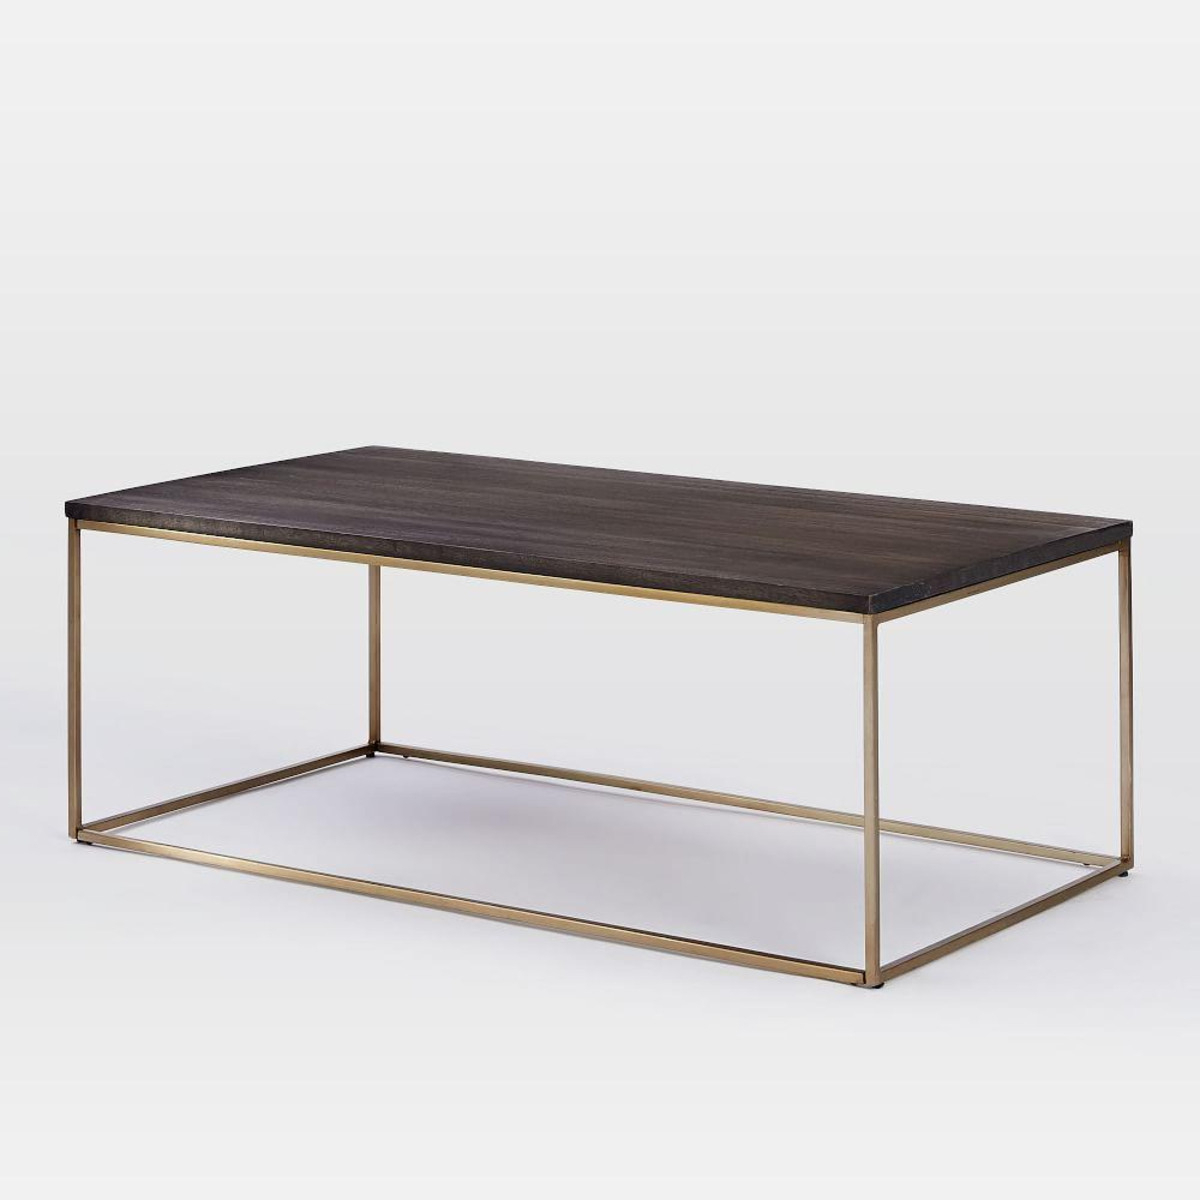 Preferred Brass Coffee Table With Glass Top Taroudant Industrial Loft Hammered In Darbuka Brass Coffee Tables (Gallery 13 of 20)